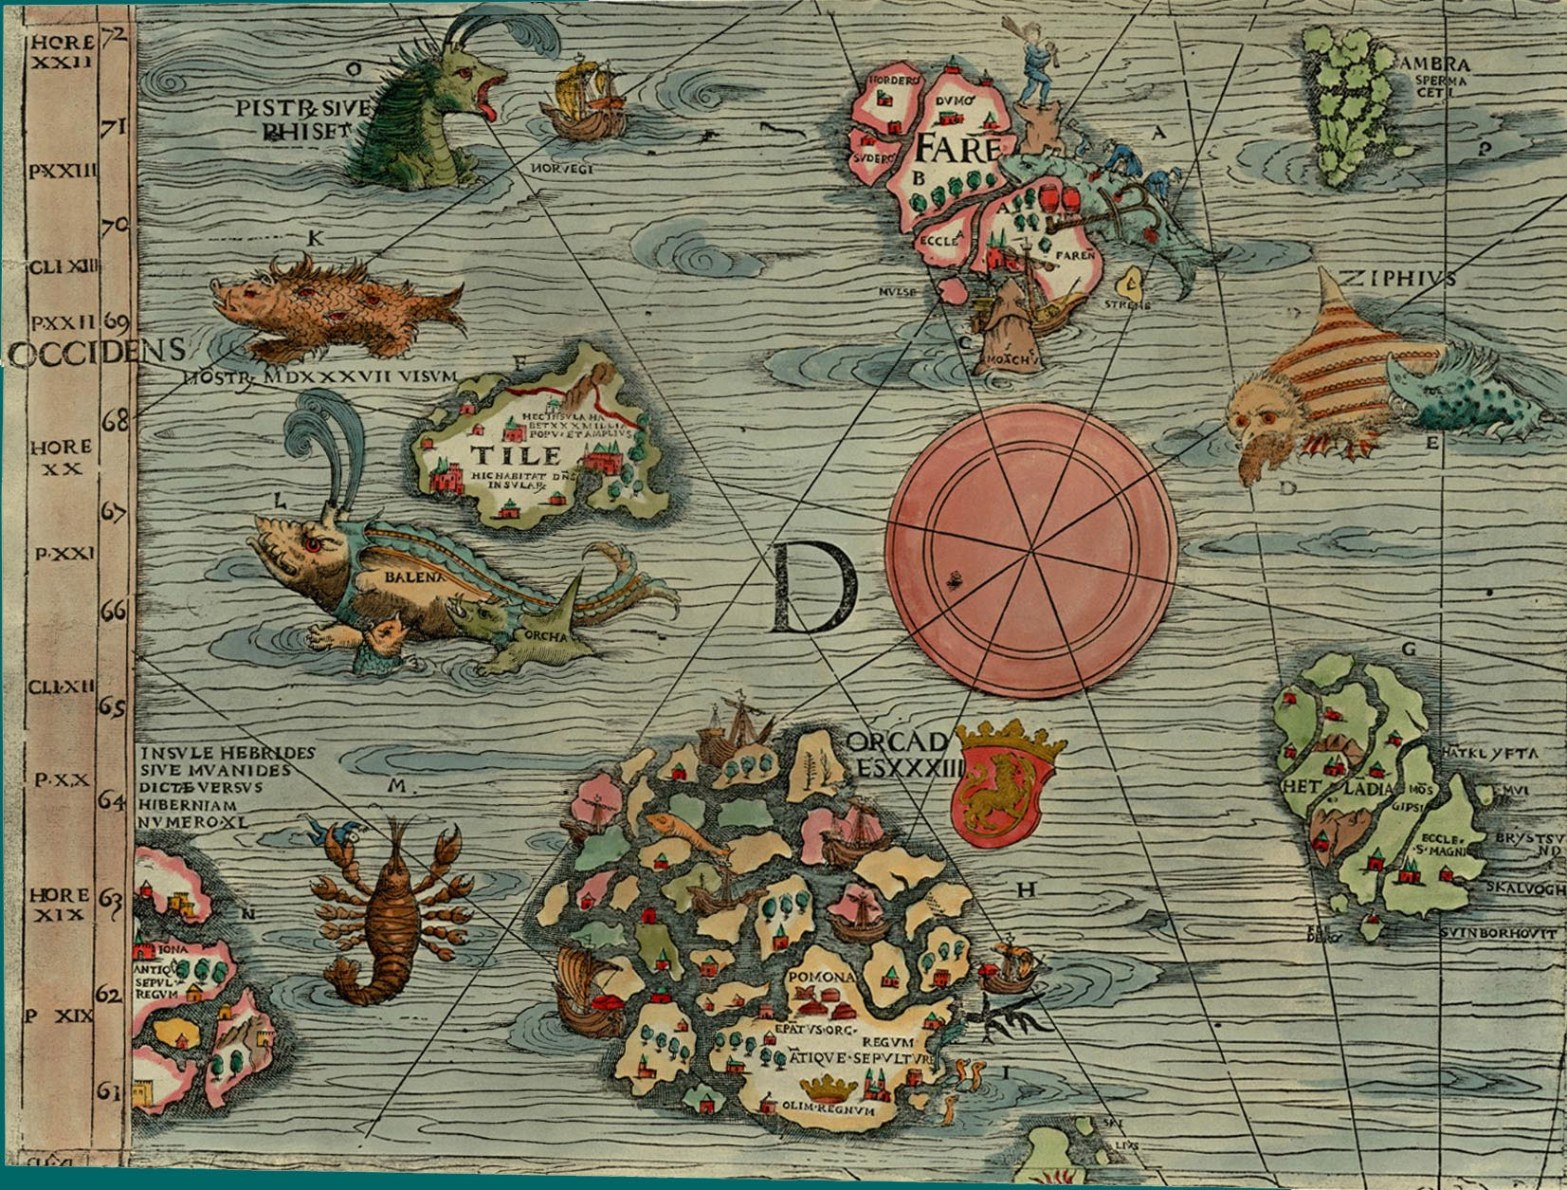 "Thule as Tile on the Carta Marina of 1539 by Olaus Magnus, where it is shown located to the northwest of the Orkney islands, with a ""monster, seen in 1537"", a whale (""balena""), and an orca nearby."